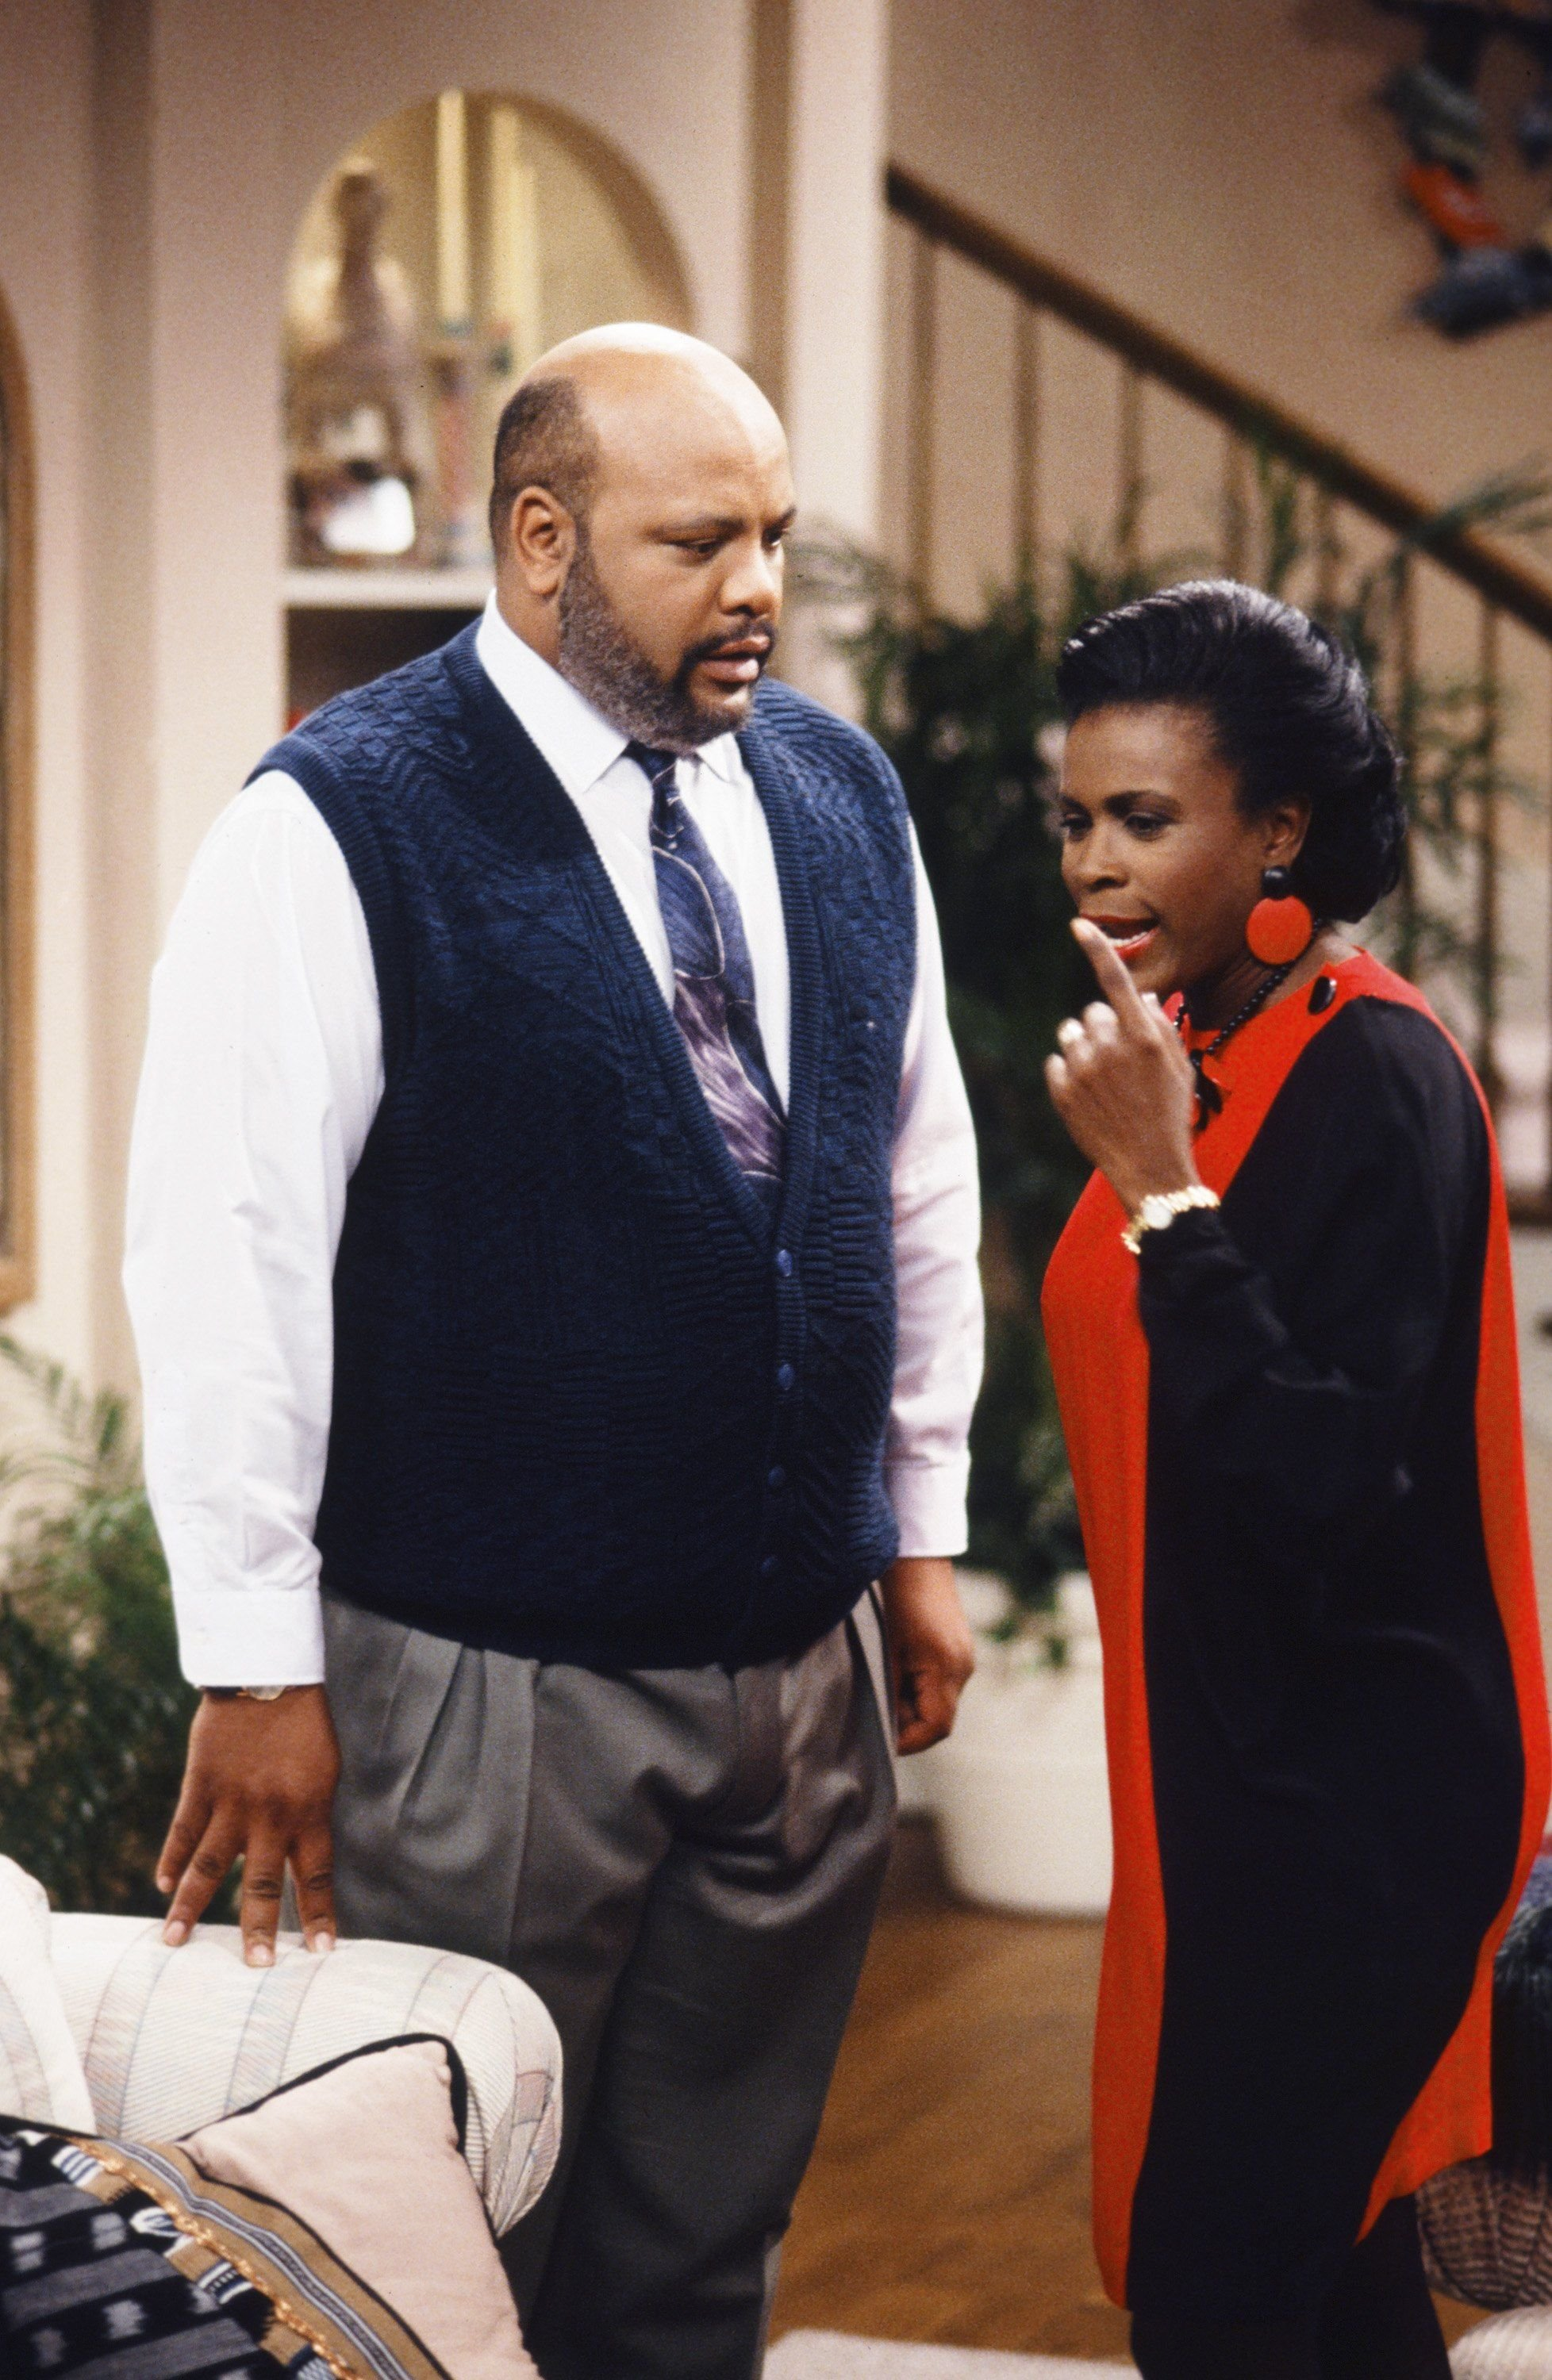 """James Avery as Philip Banks, Janet Hubert as Vivian Bank during the """"Six Degrees of Graduation"""" Episode 24 of """"The Fresh Prince of Bel Air.""""   Source: Getty Images"""